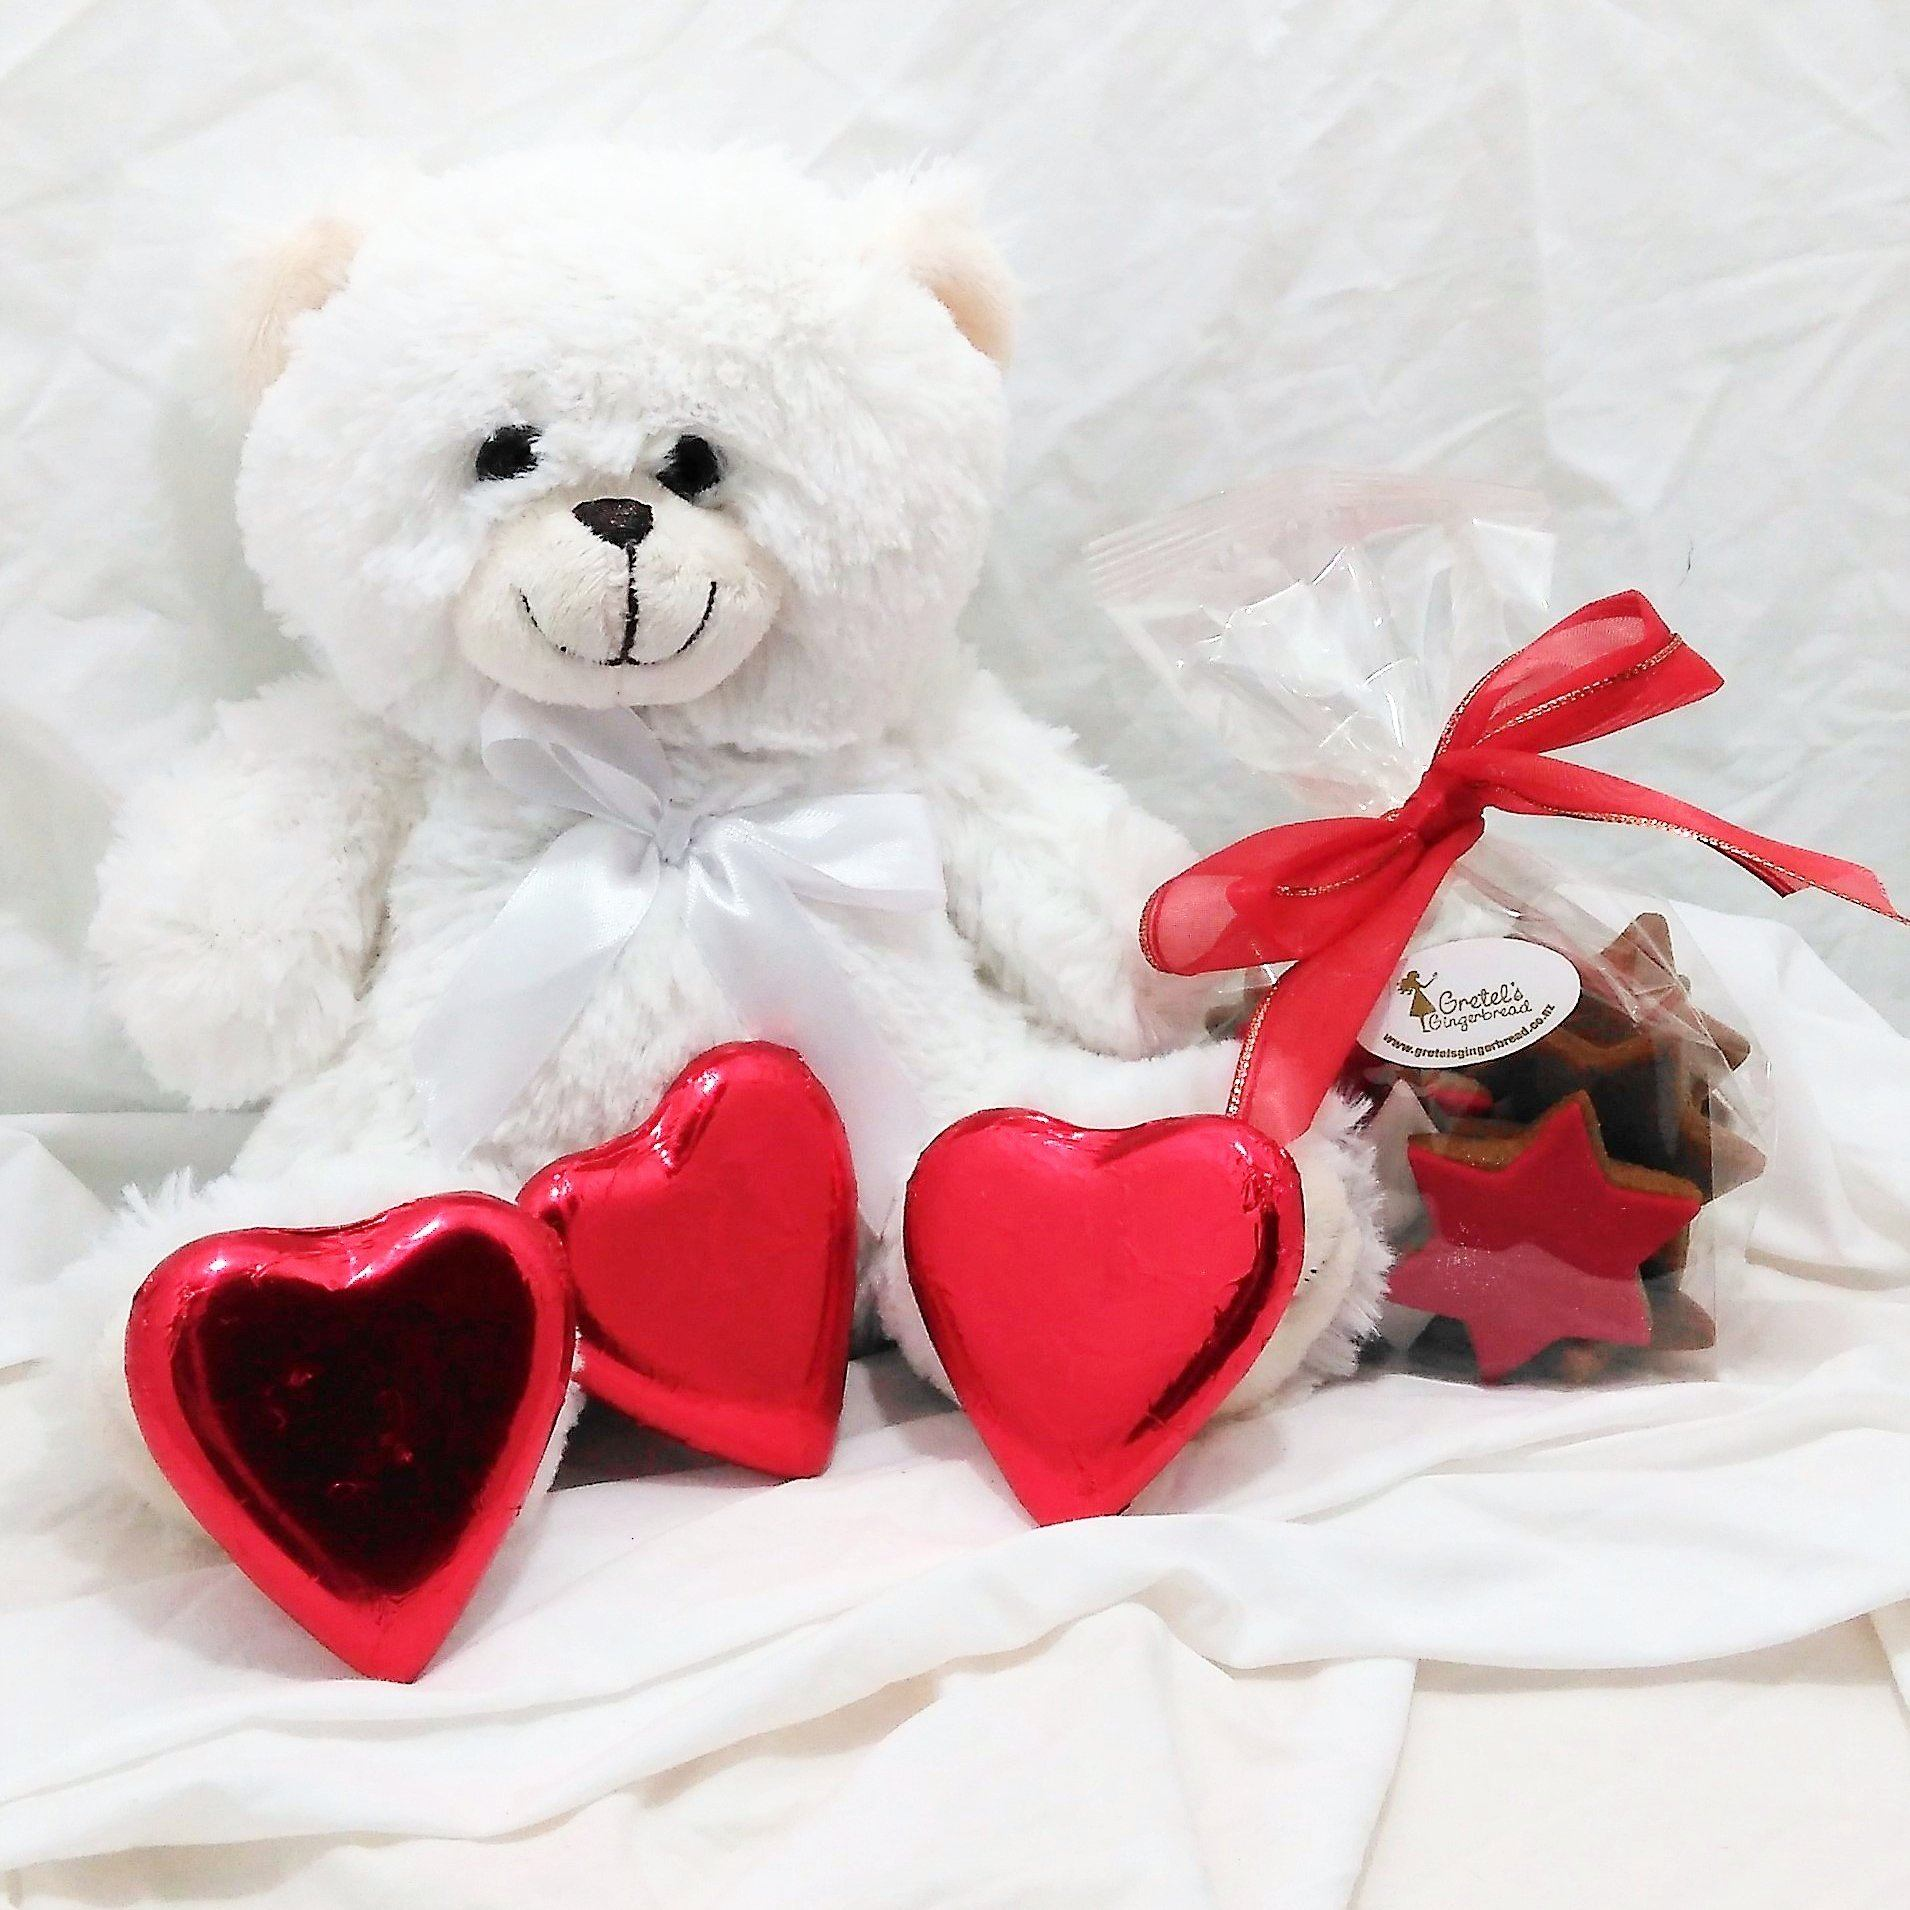 Teddy bear and treat gift